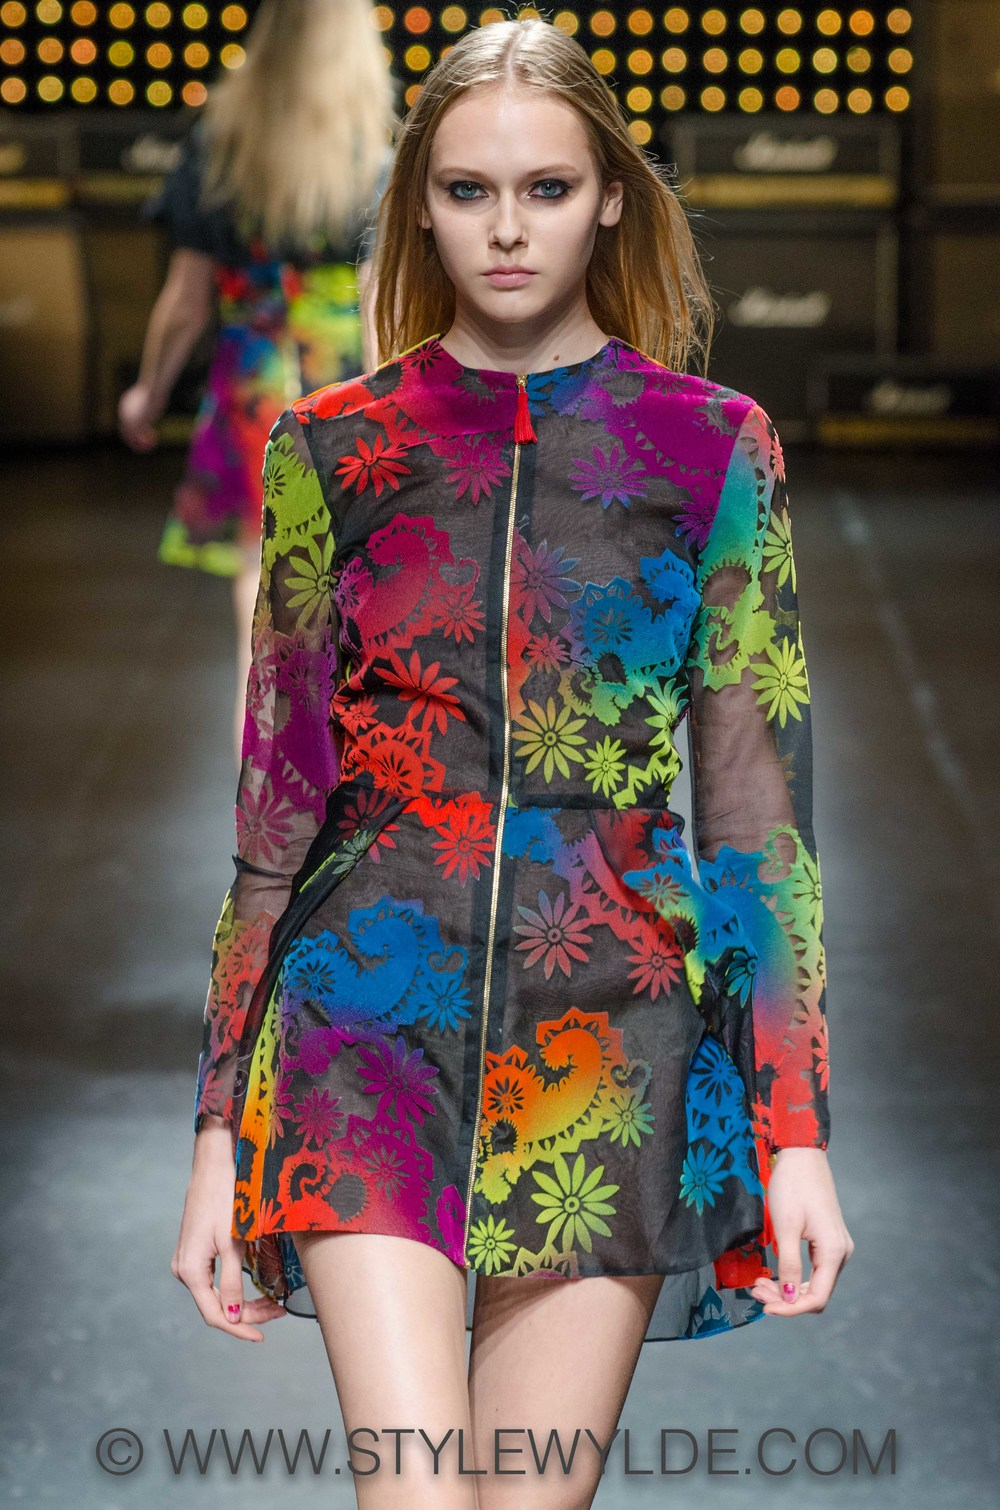 stylewylde_HouseofHolland_SS15 (67 of 68).jpg